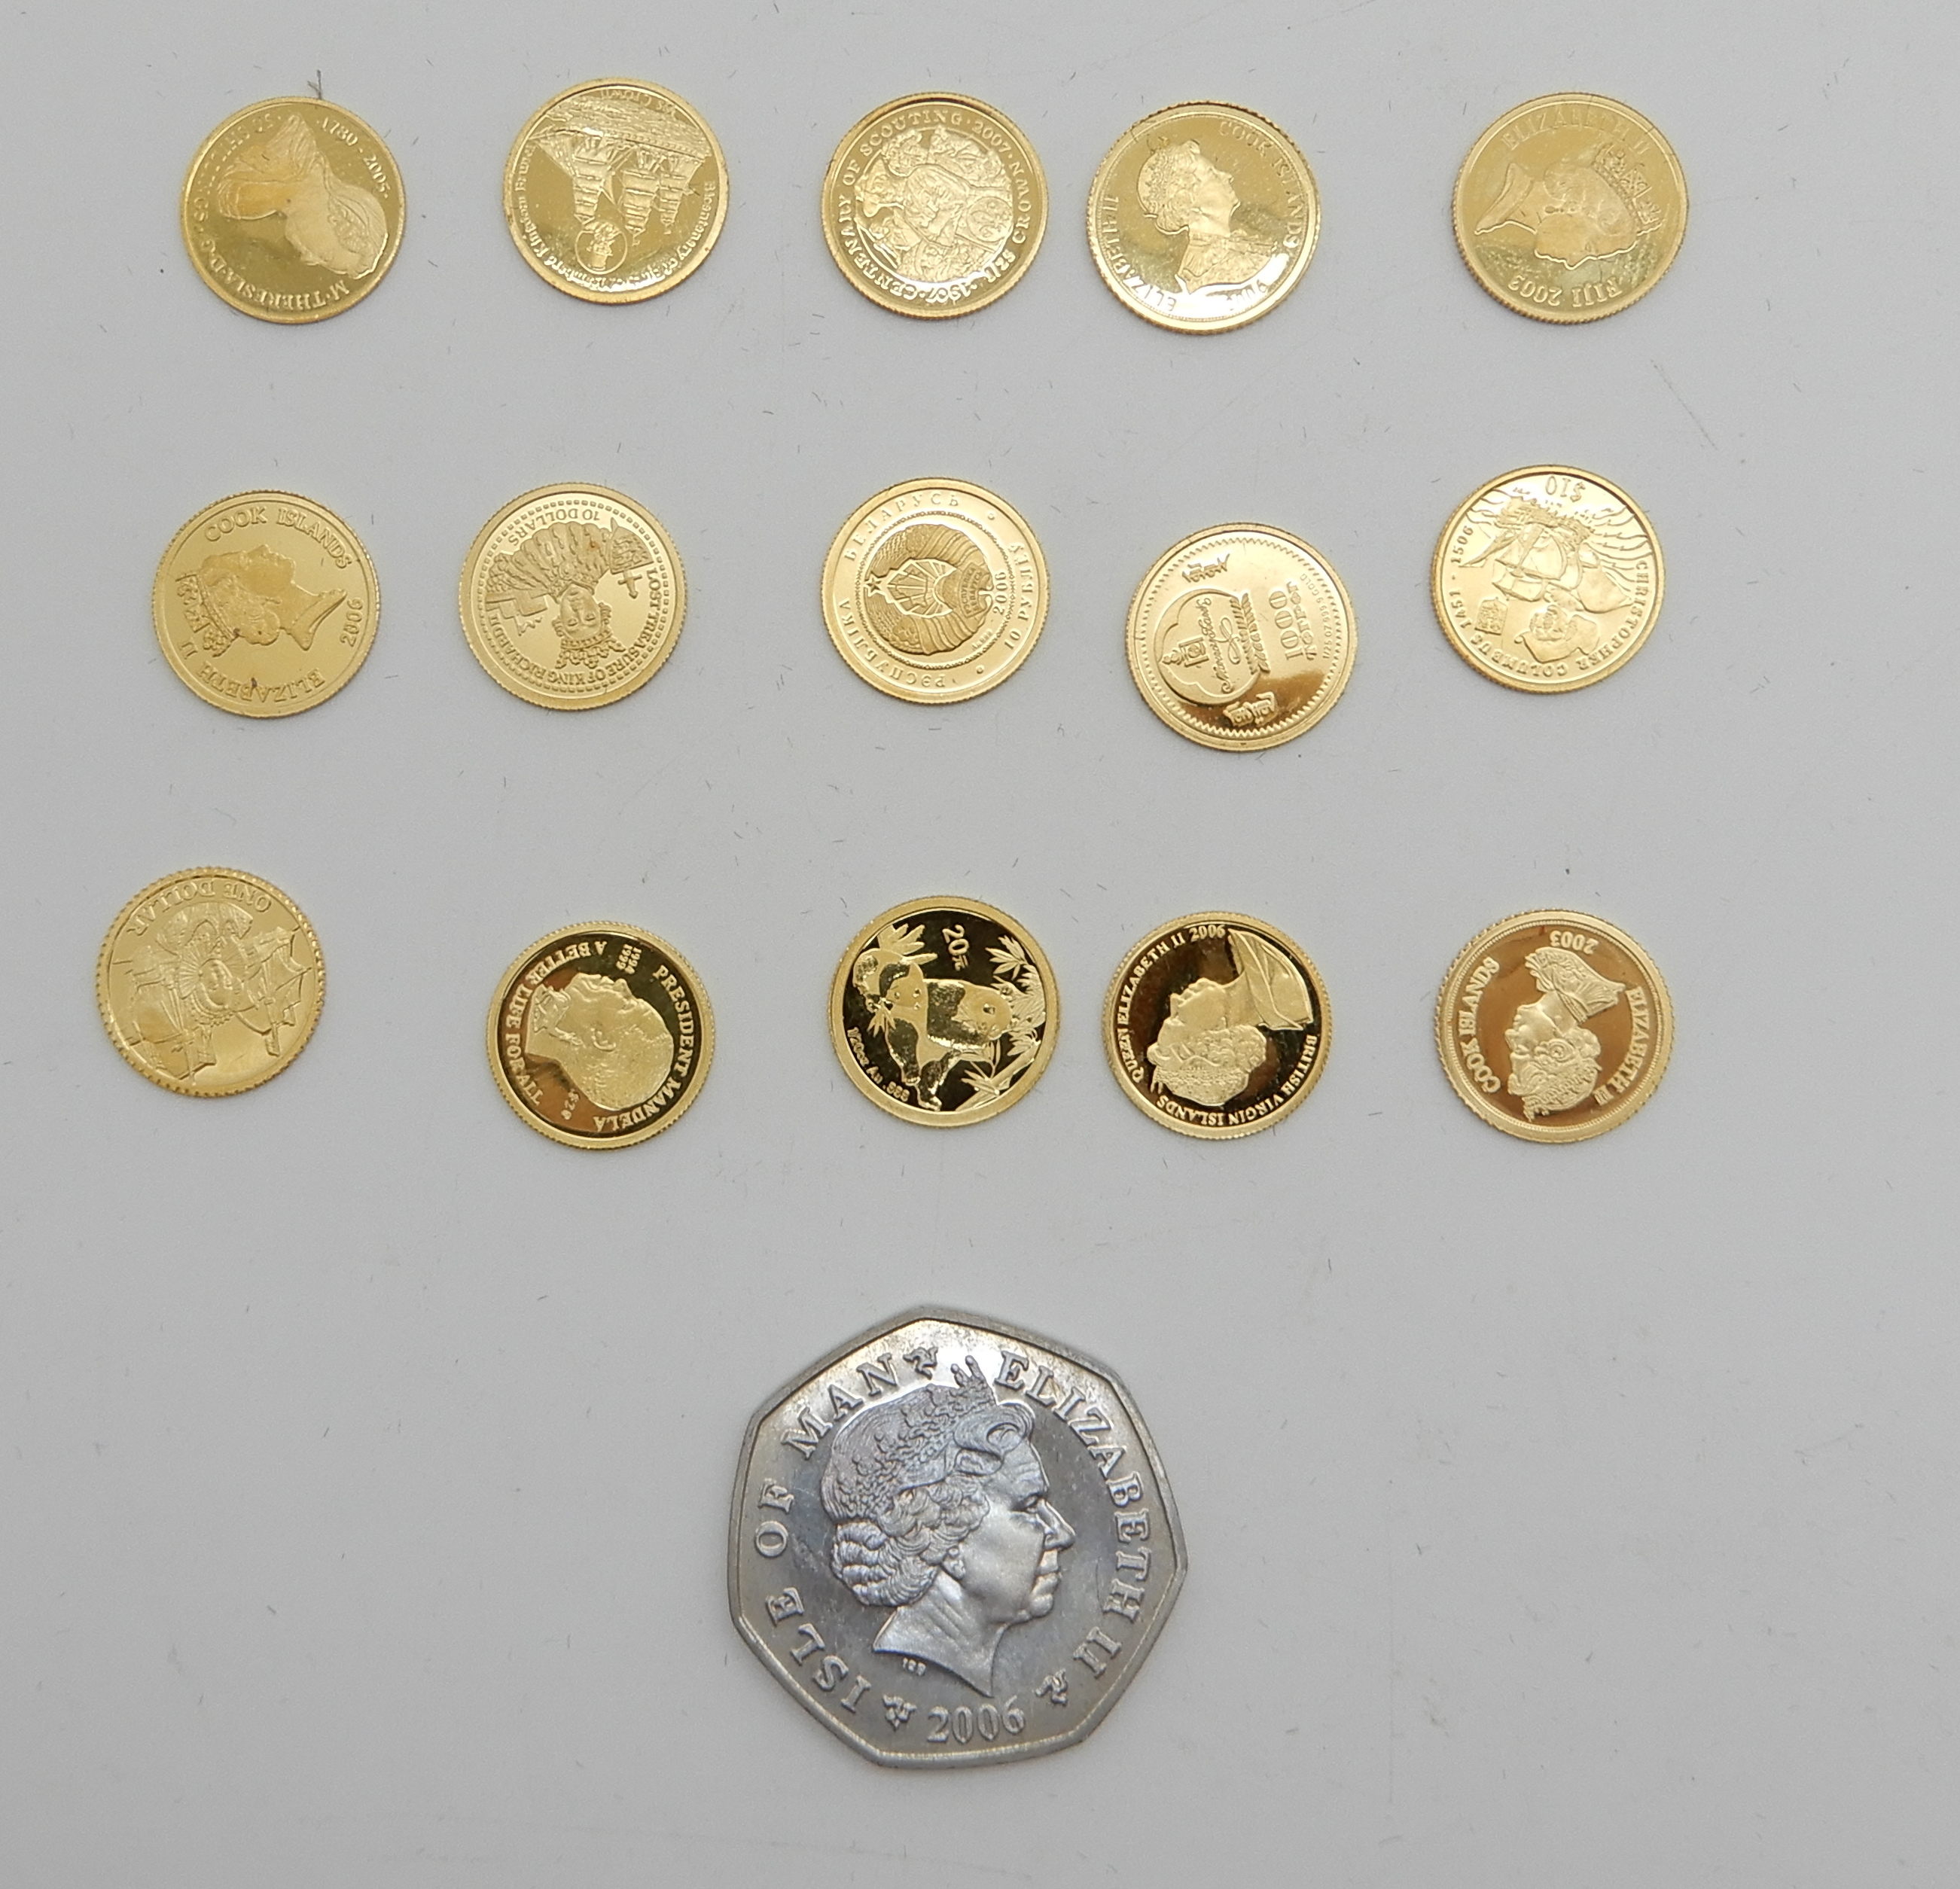 Lot 195 - FIFTEEN ASSORTED MINIATURE FINE GOLD COINS each 1.2gms approx with an Isle of Man Christmas 2006